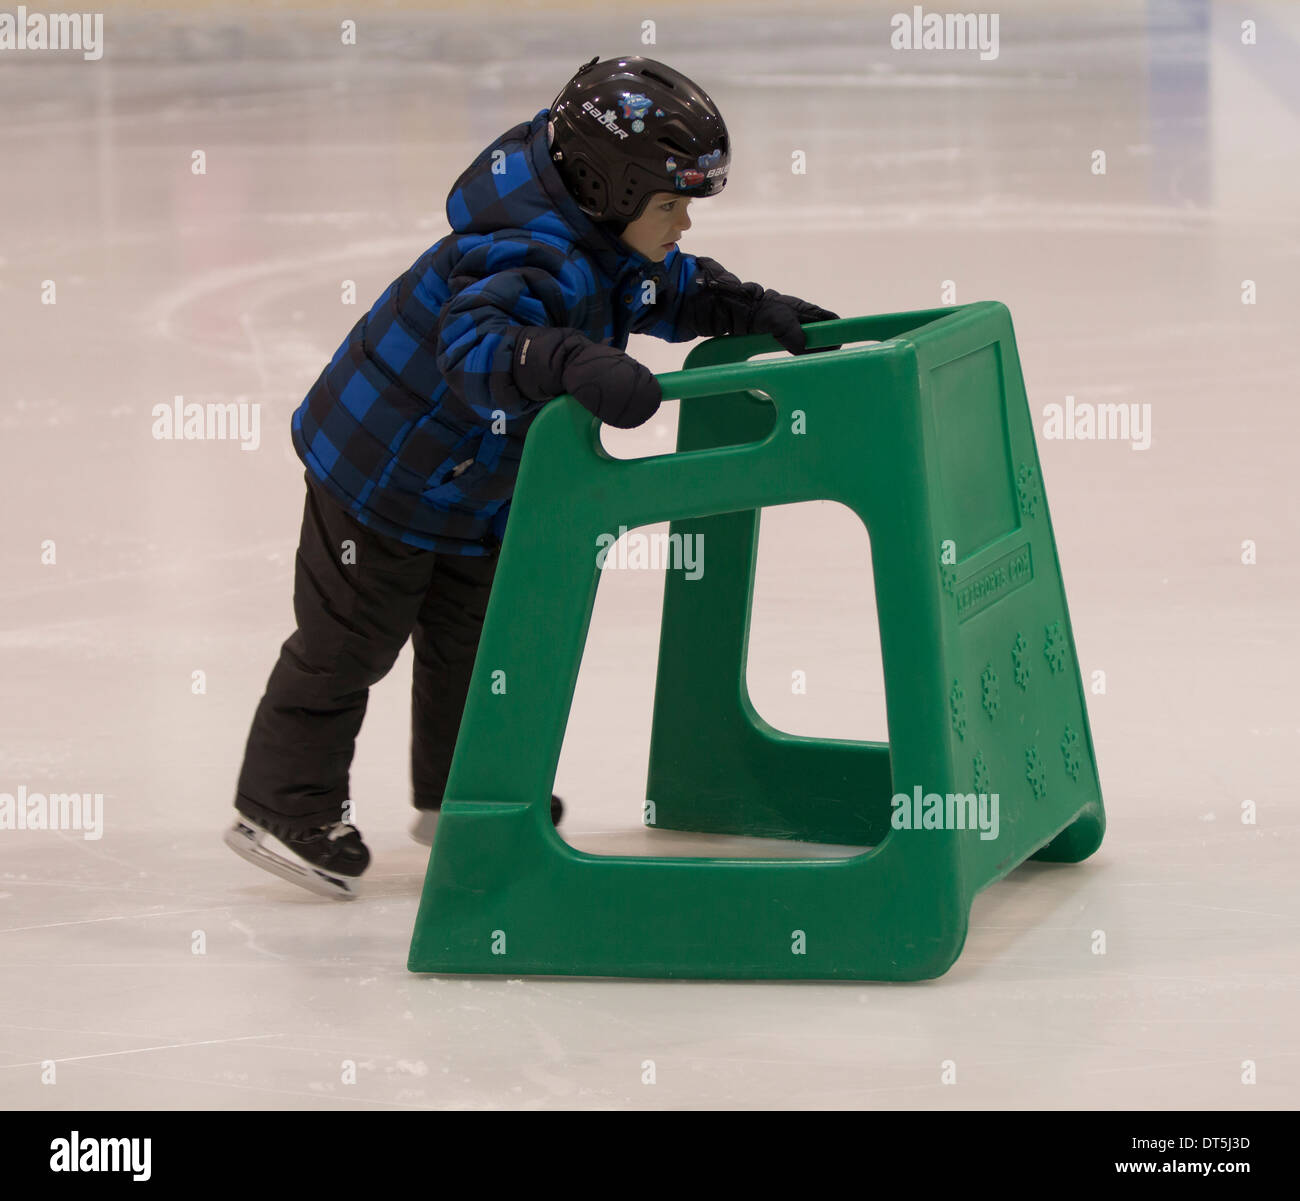 small-boy-learning-to-skate-on-ice-with-assistance-DT5J3D.jpg